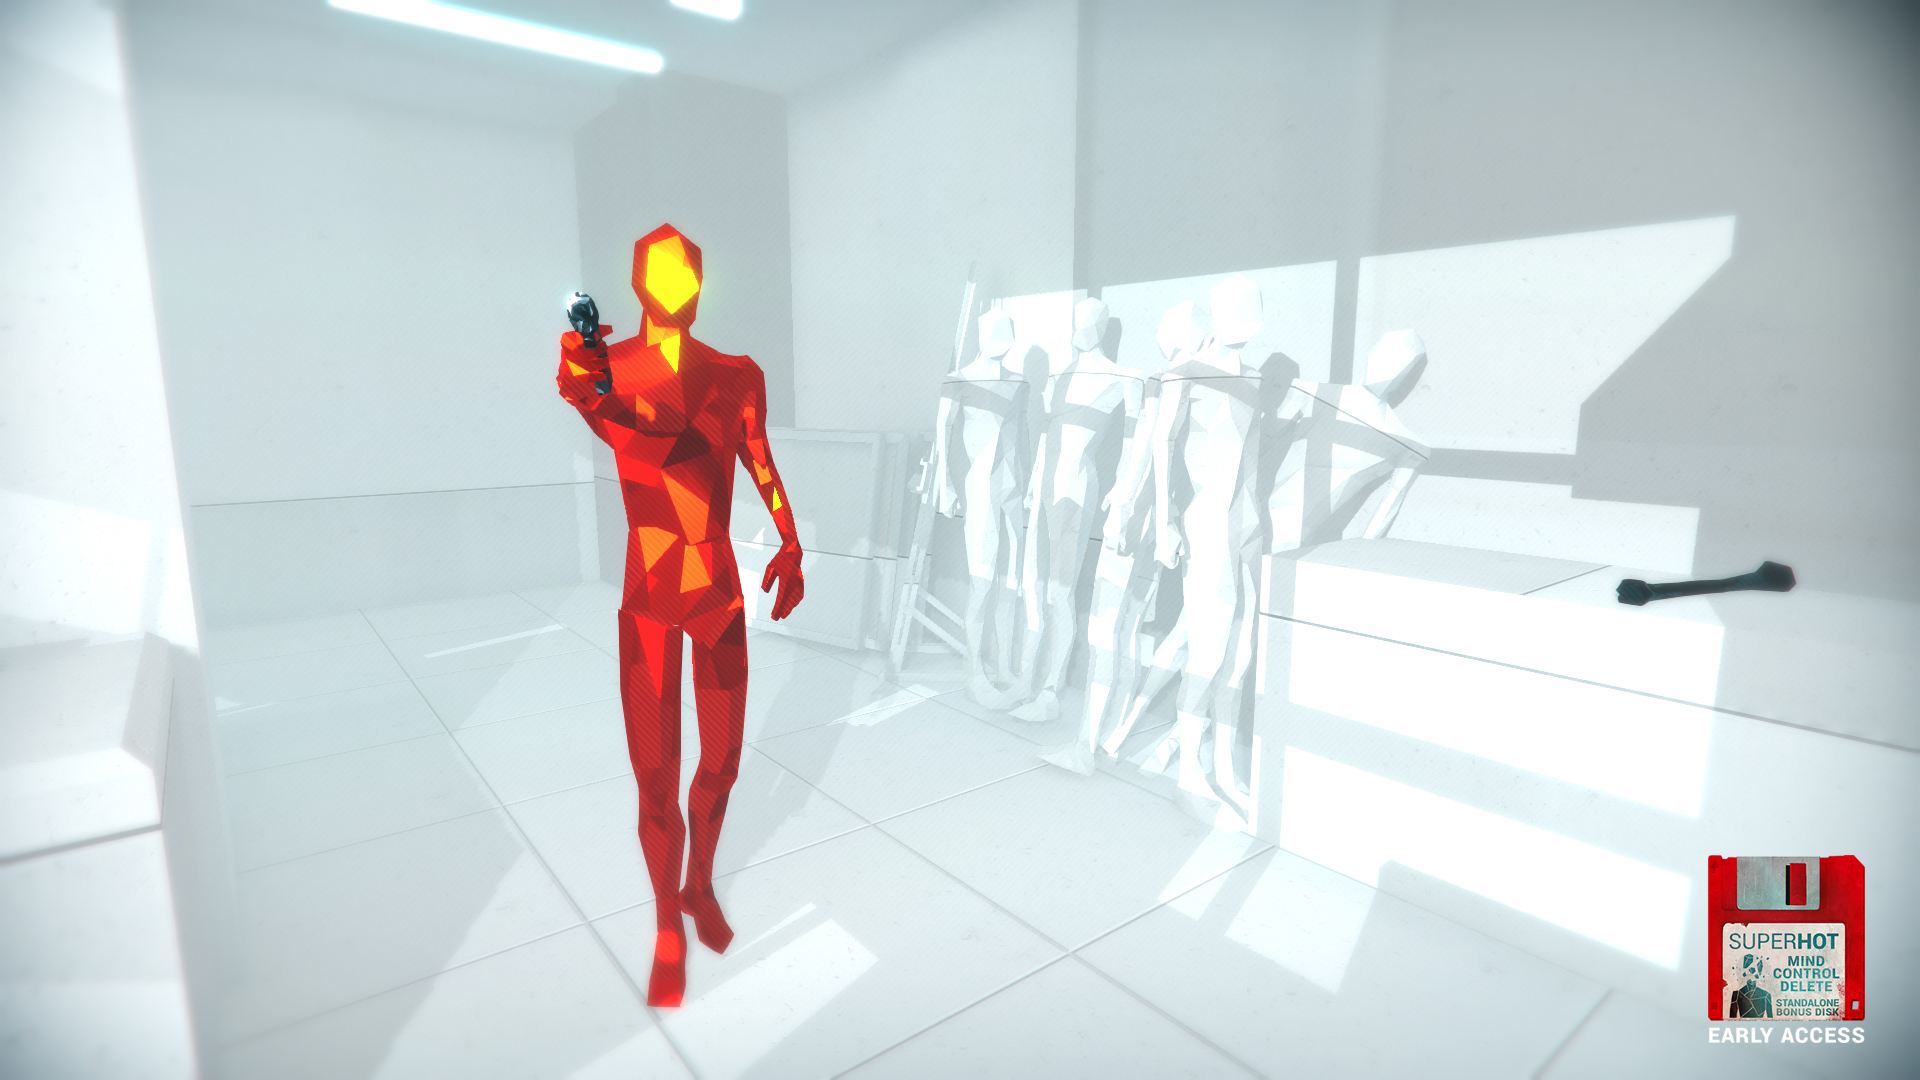 Indie shooter Superhot to get free standalone expansion pack